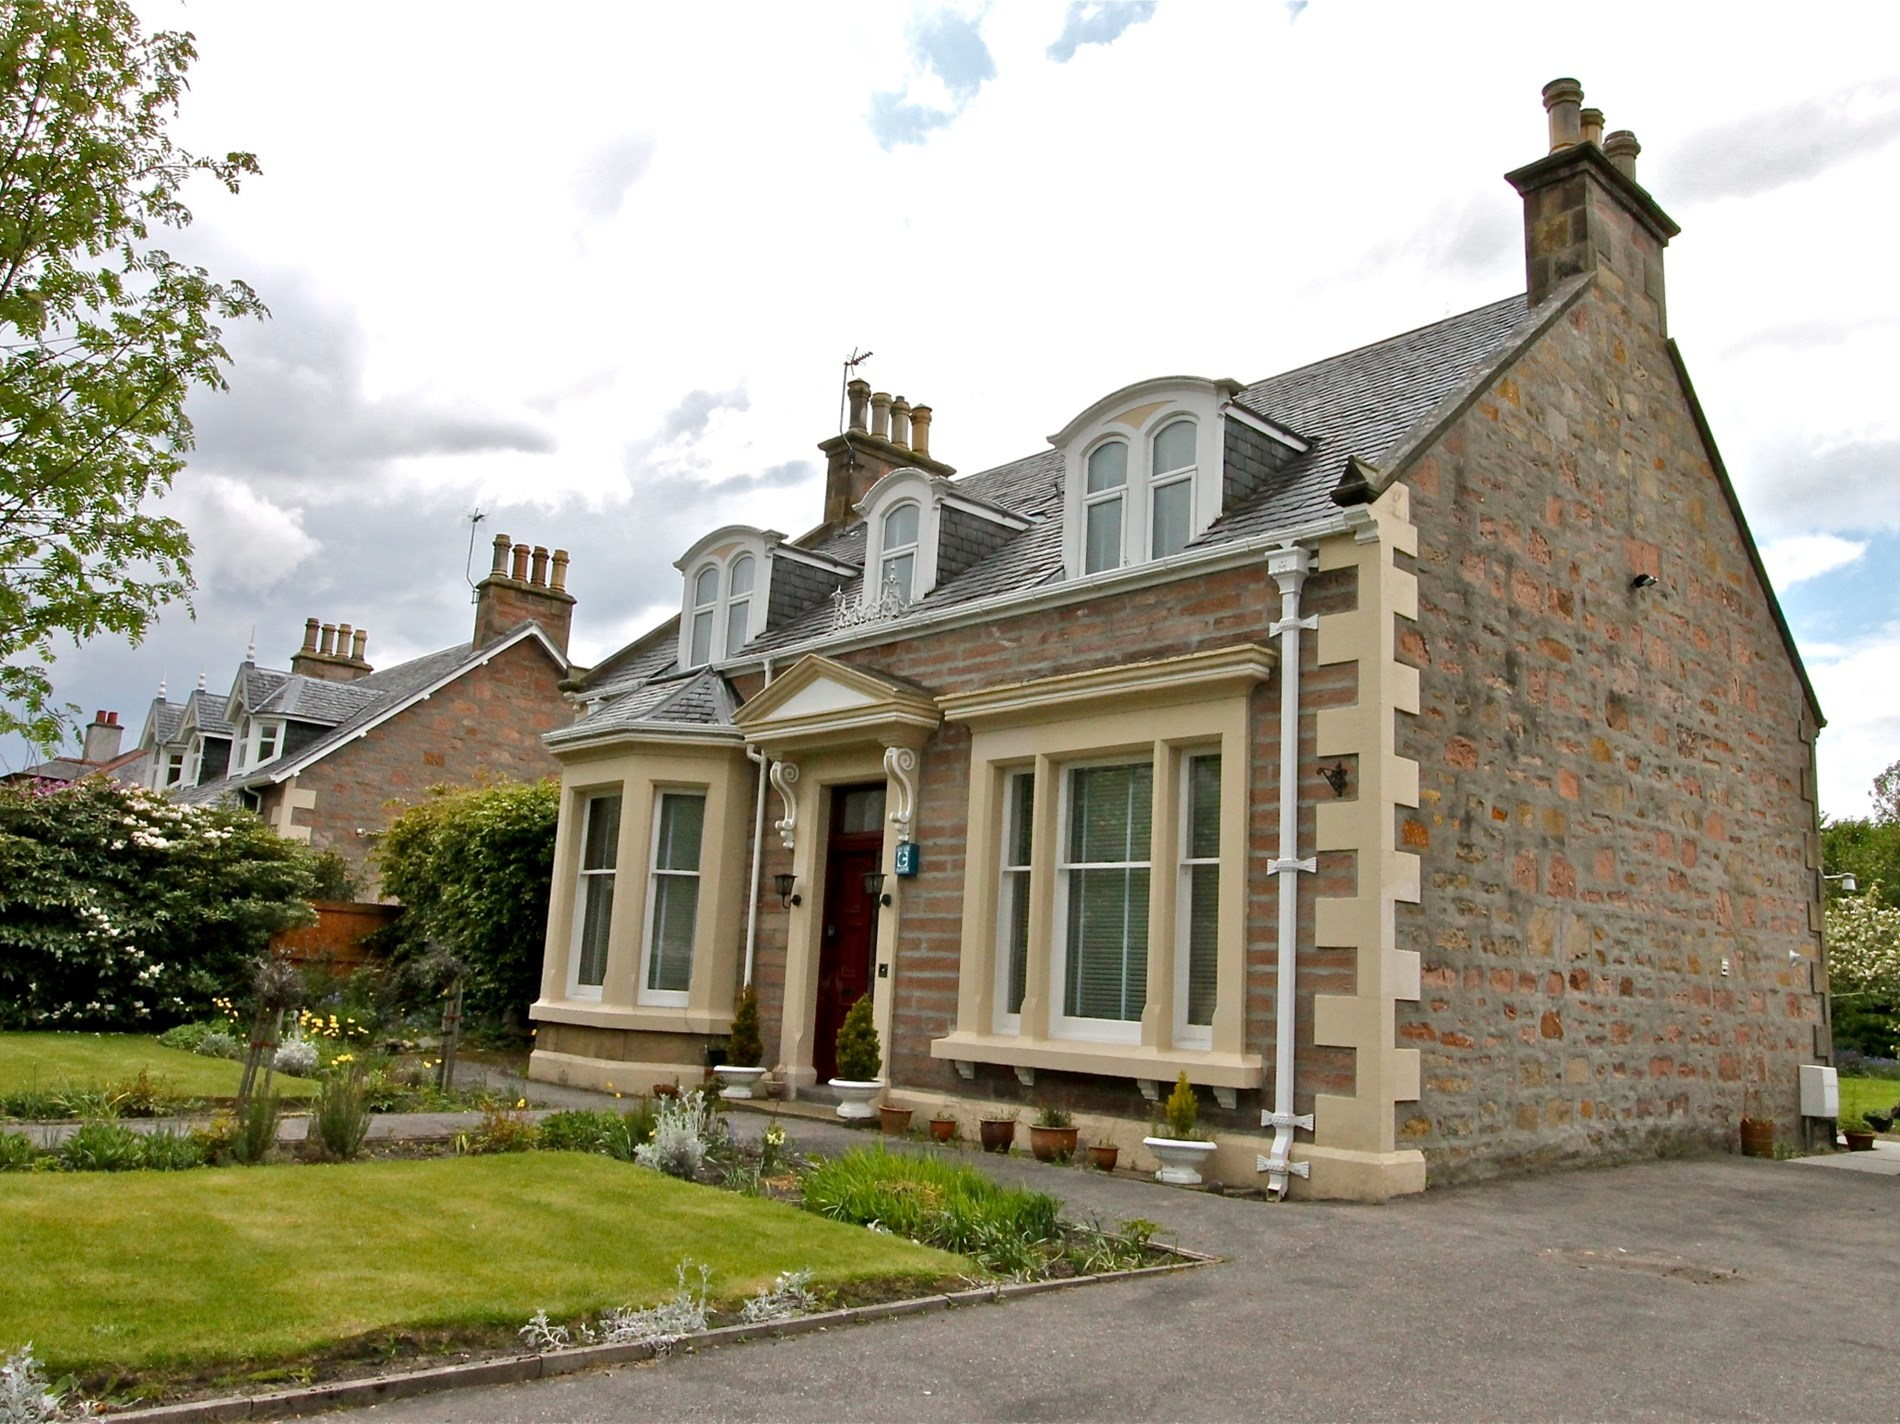 5 Bedroom Cottage in Inverness, Inverness, Loch Ness & Nairn, Highlands